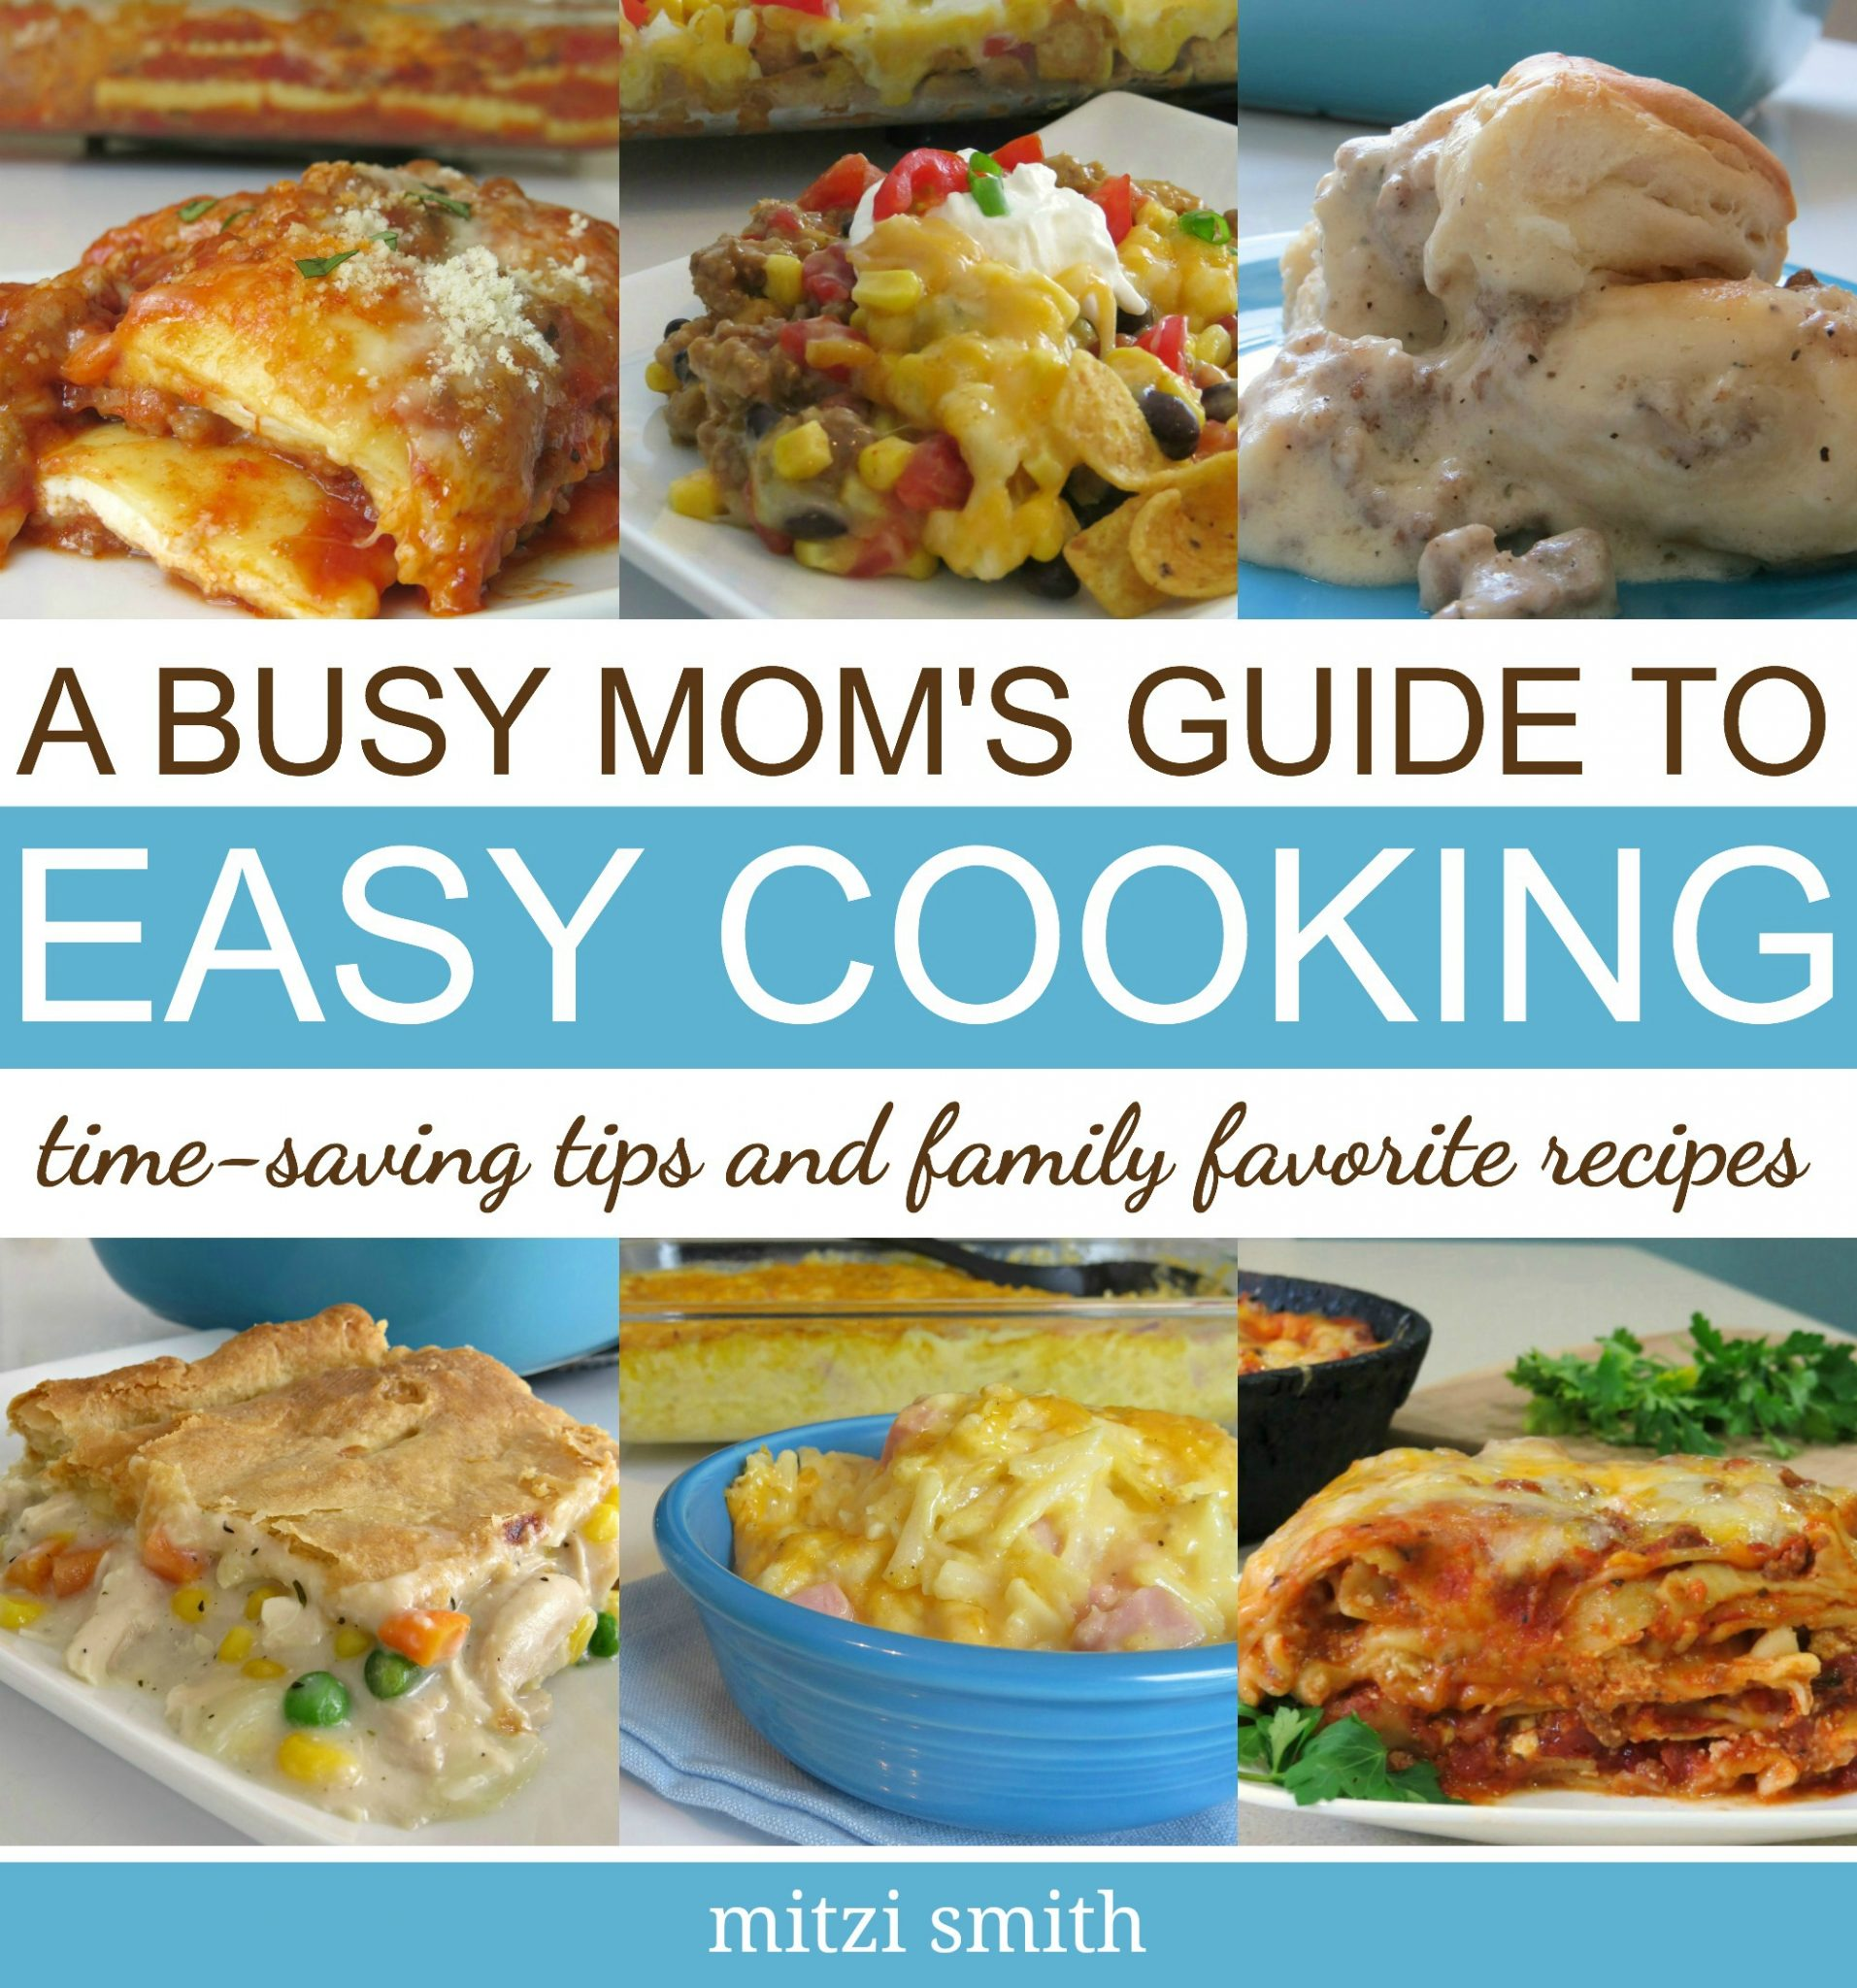 Quick Easy Cooking Guide Written Reality